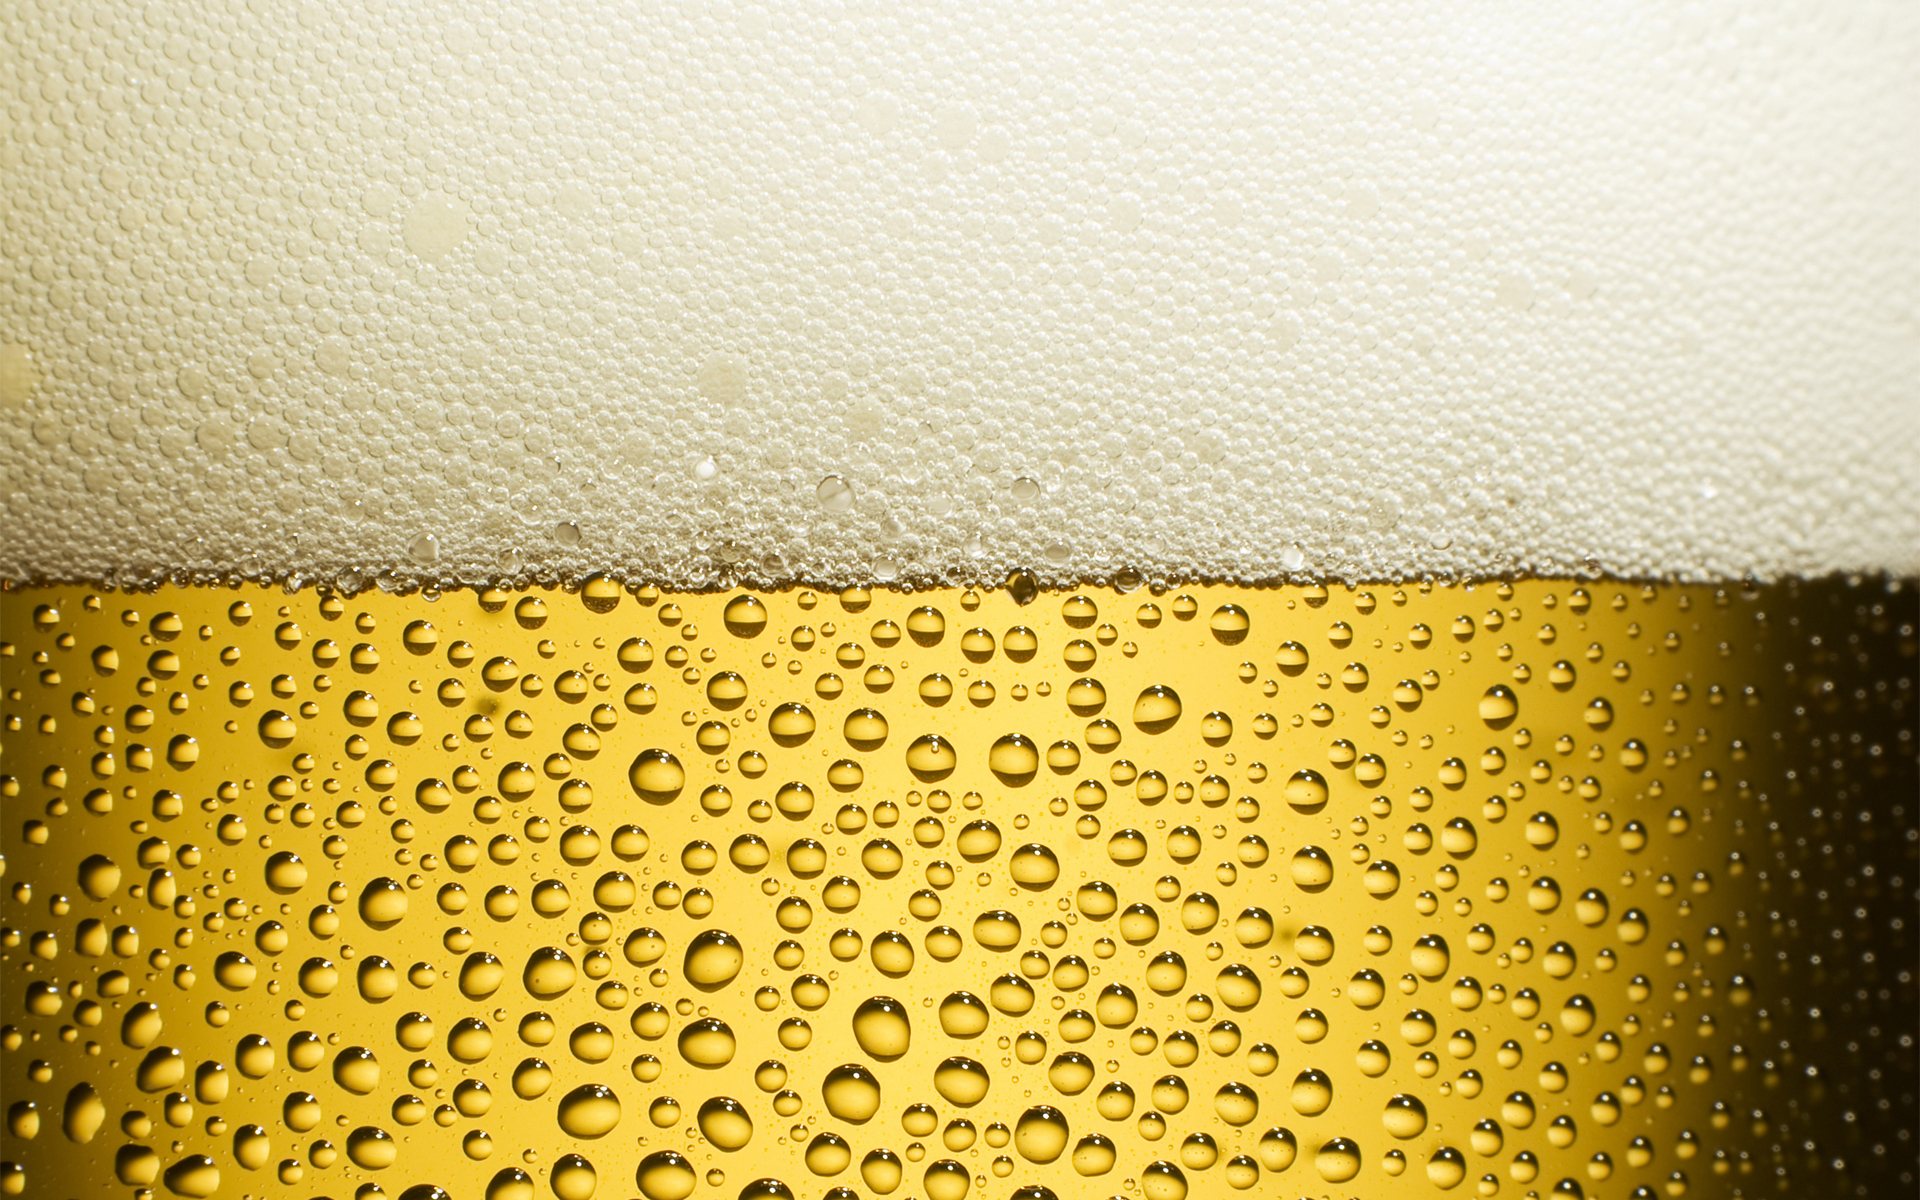 , , texture, background, photo, beer background texture